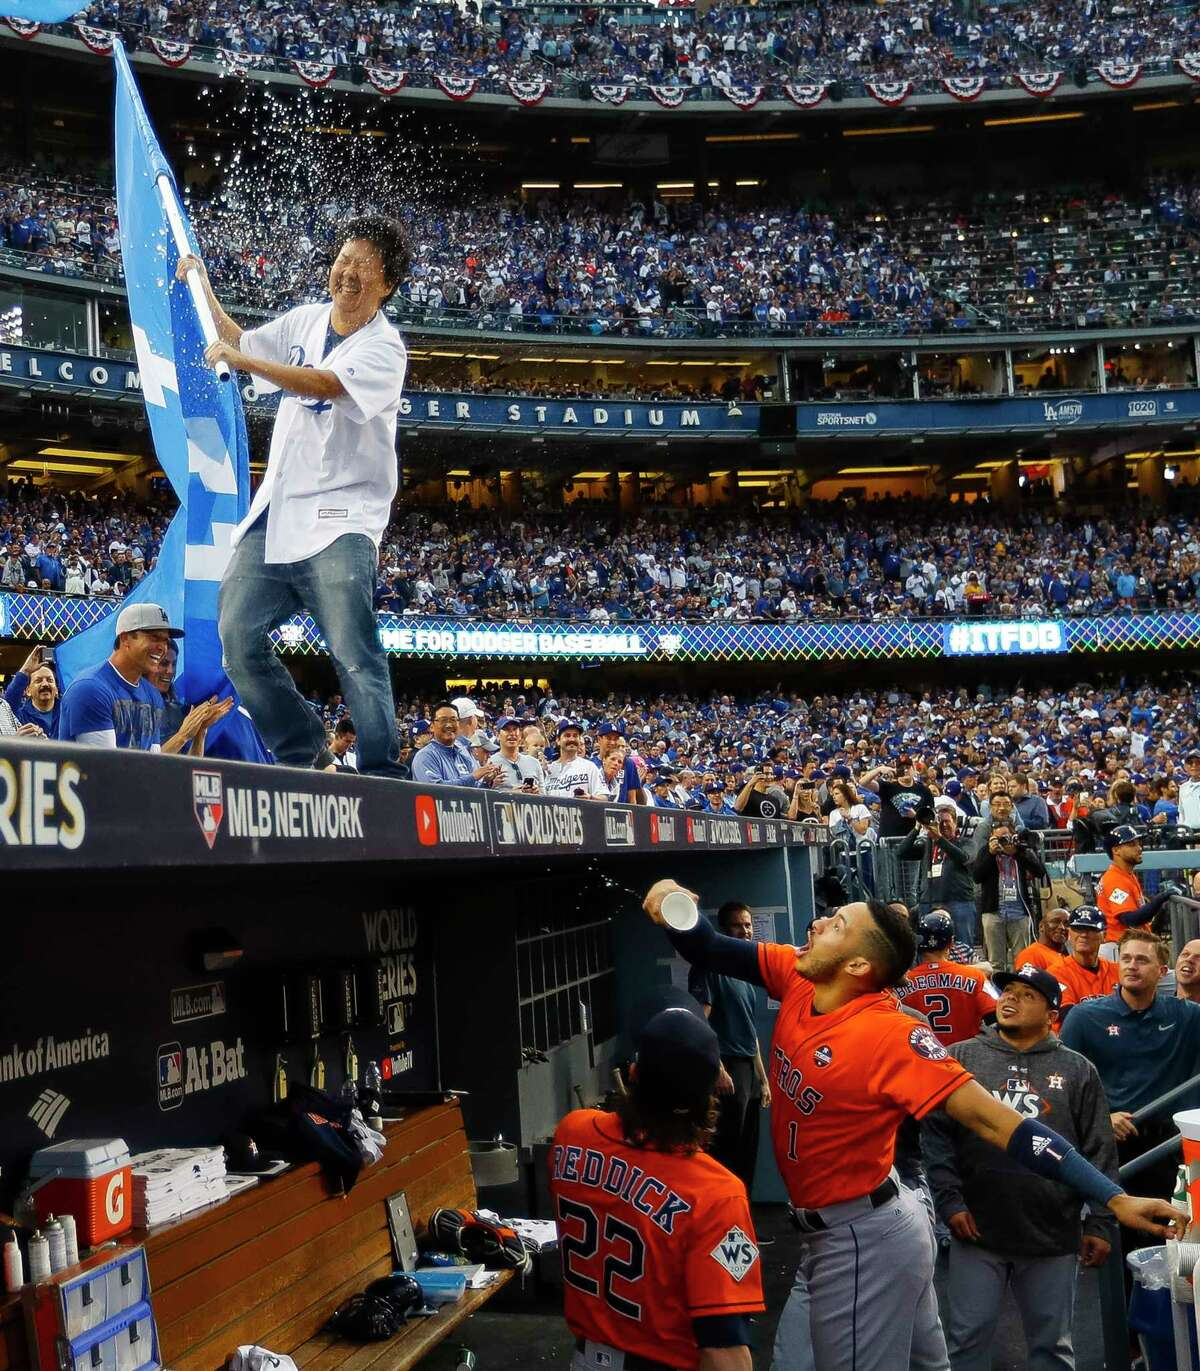 Houston Astros shortstop Carlos Correa (1) throws water at actor Ken Jeong on top of the Astros dugout with a Dodgers flag before Game 7 of the World Series at Dodger Stadium on Wednesday, Nov. 1, 2017, in Los Angeles.